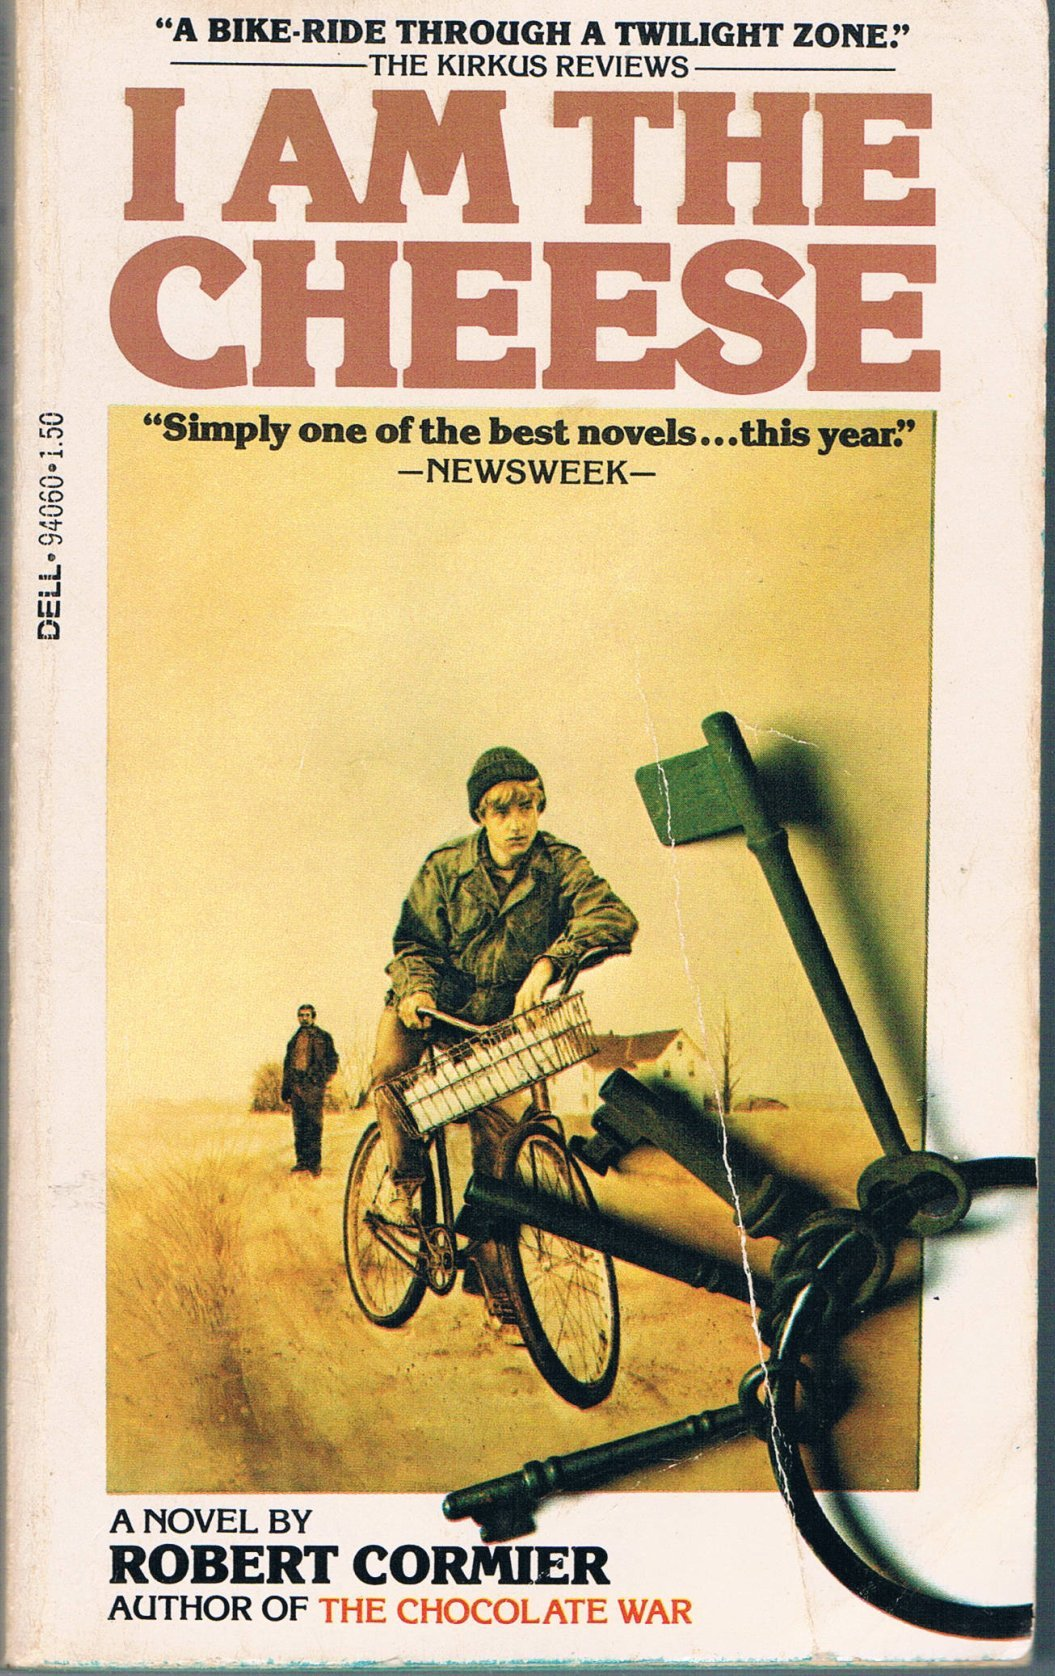 an analysis of the novel i am the cheese by robert cormier Posts about i am the cheese written by mark flowers  the completist: robert  cormier, part three what happens when your free will is no longer free the  novels we'll look at in today's post feature characters whose mental  and the  bumblebee flies anyway have clear connections in plot and theme.